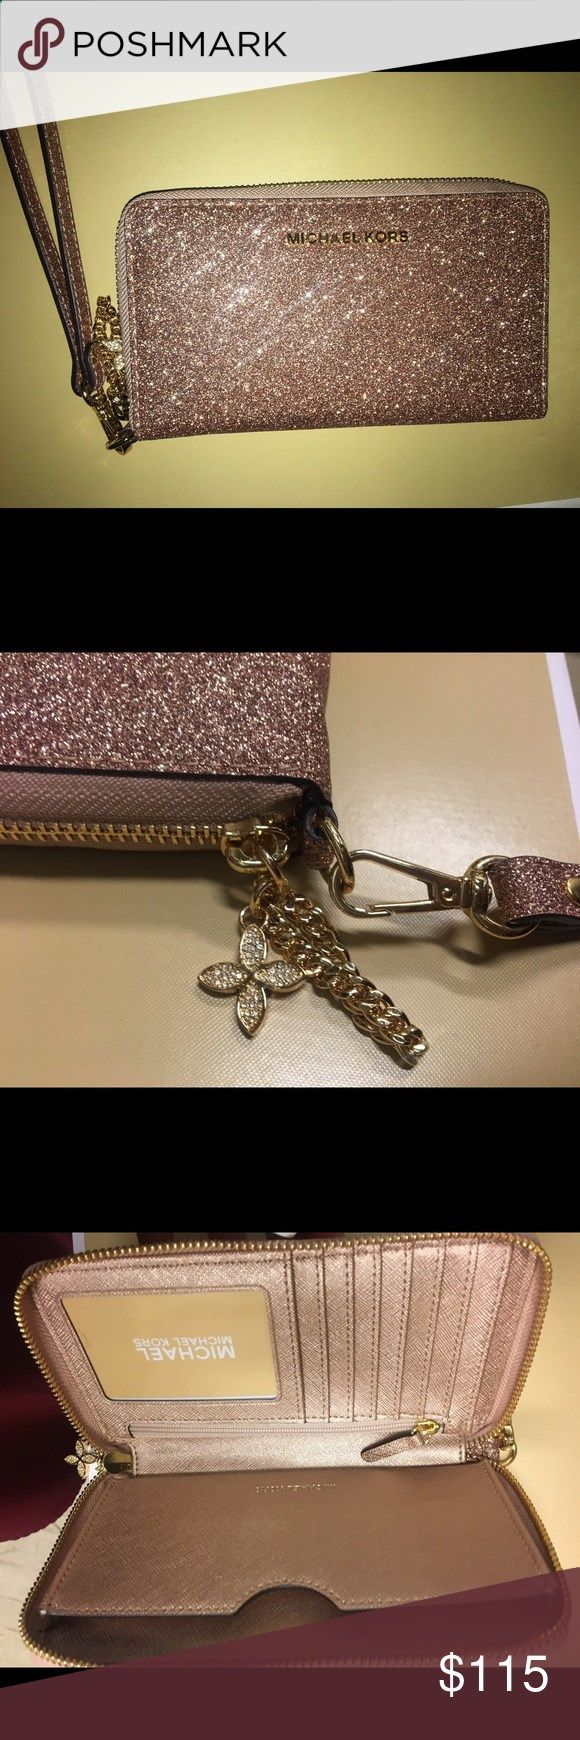 New MK wallet , not even out yet. Rose glittery gold, the gold charm adds cost to it KORS Michael Kors Bags Clutches Wristlets